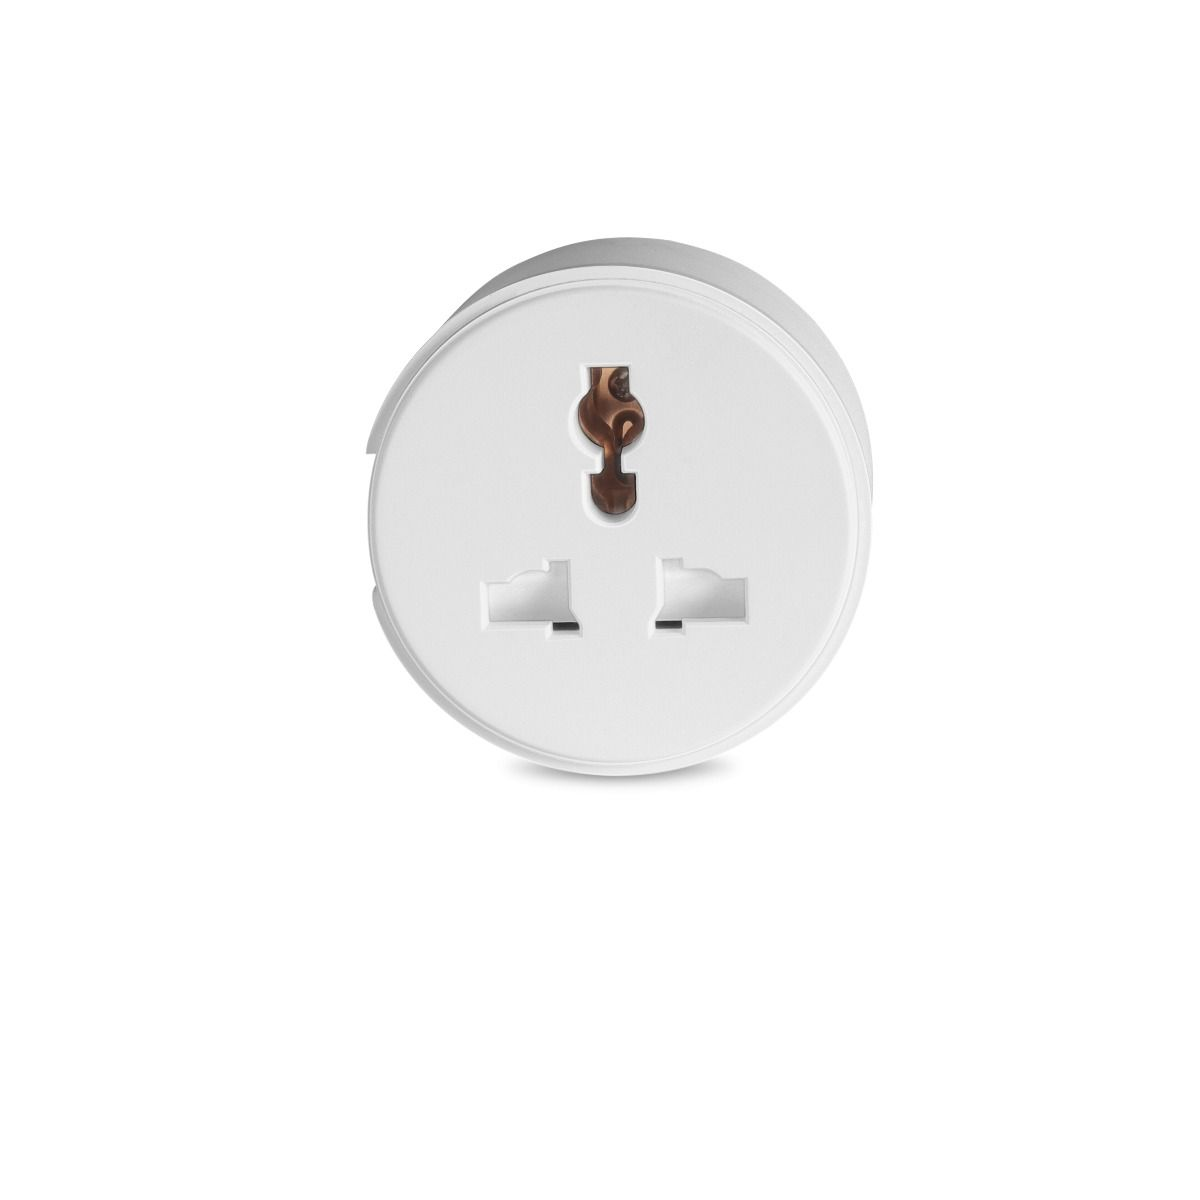 Mini Wi-Fi Enabled MWP002 Smart Plug (with Alexa & Google Assistant)